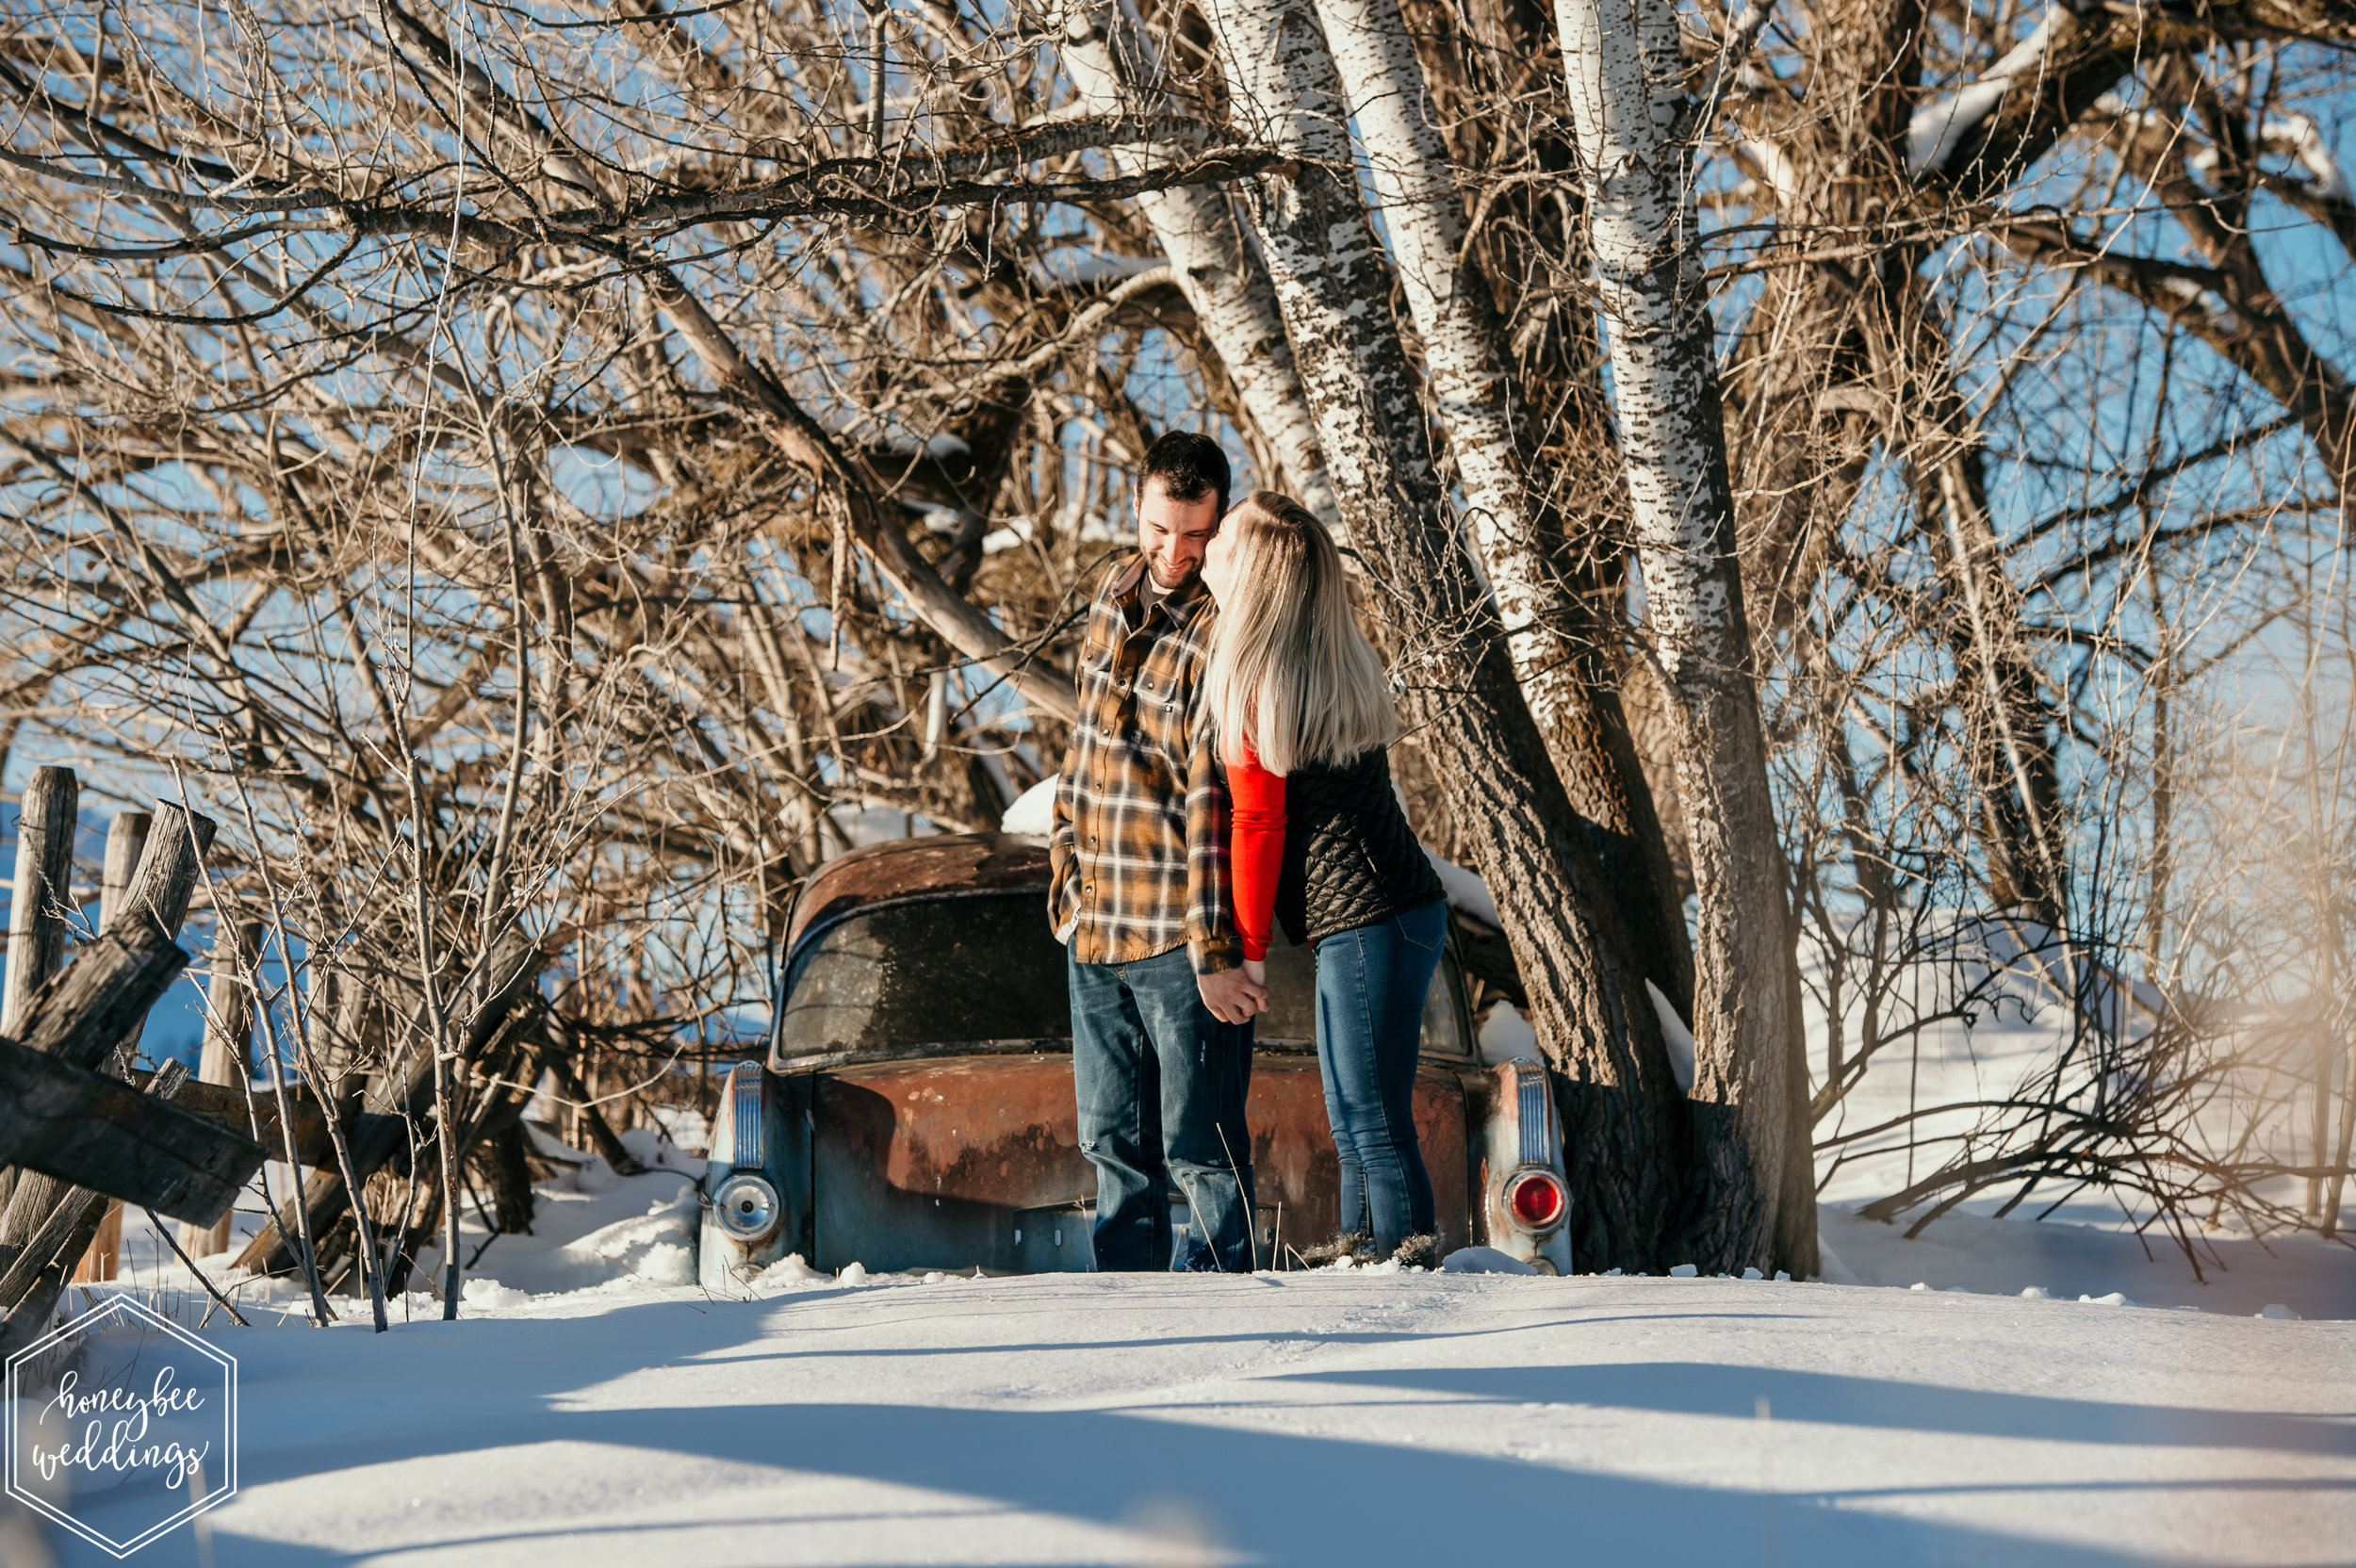 002Montana Wedding Photographer_Winter Engagement_Polson_Jessica & Brian_March 09, 2019-10.jpg